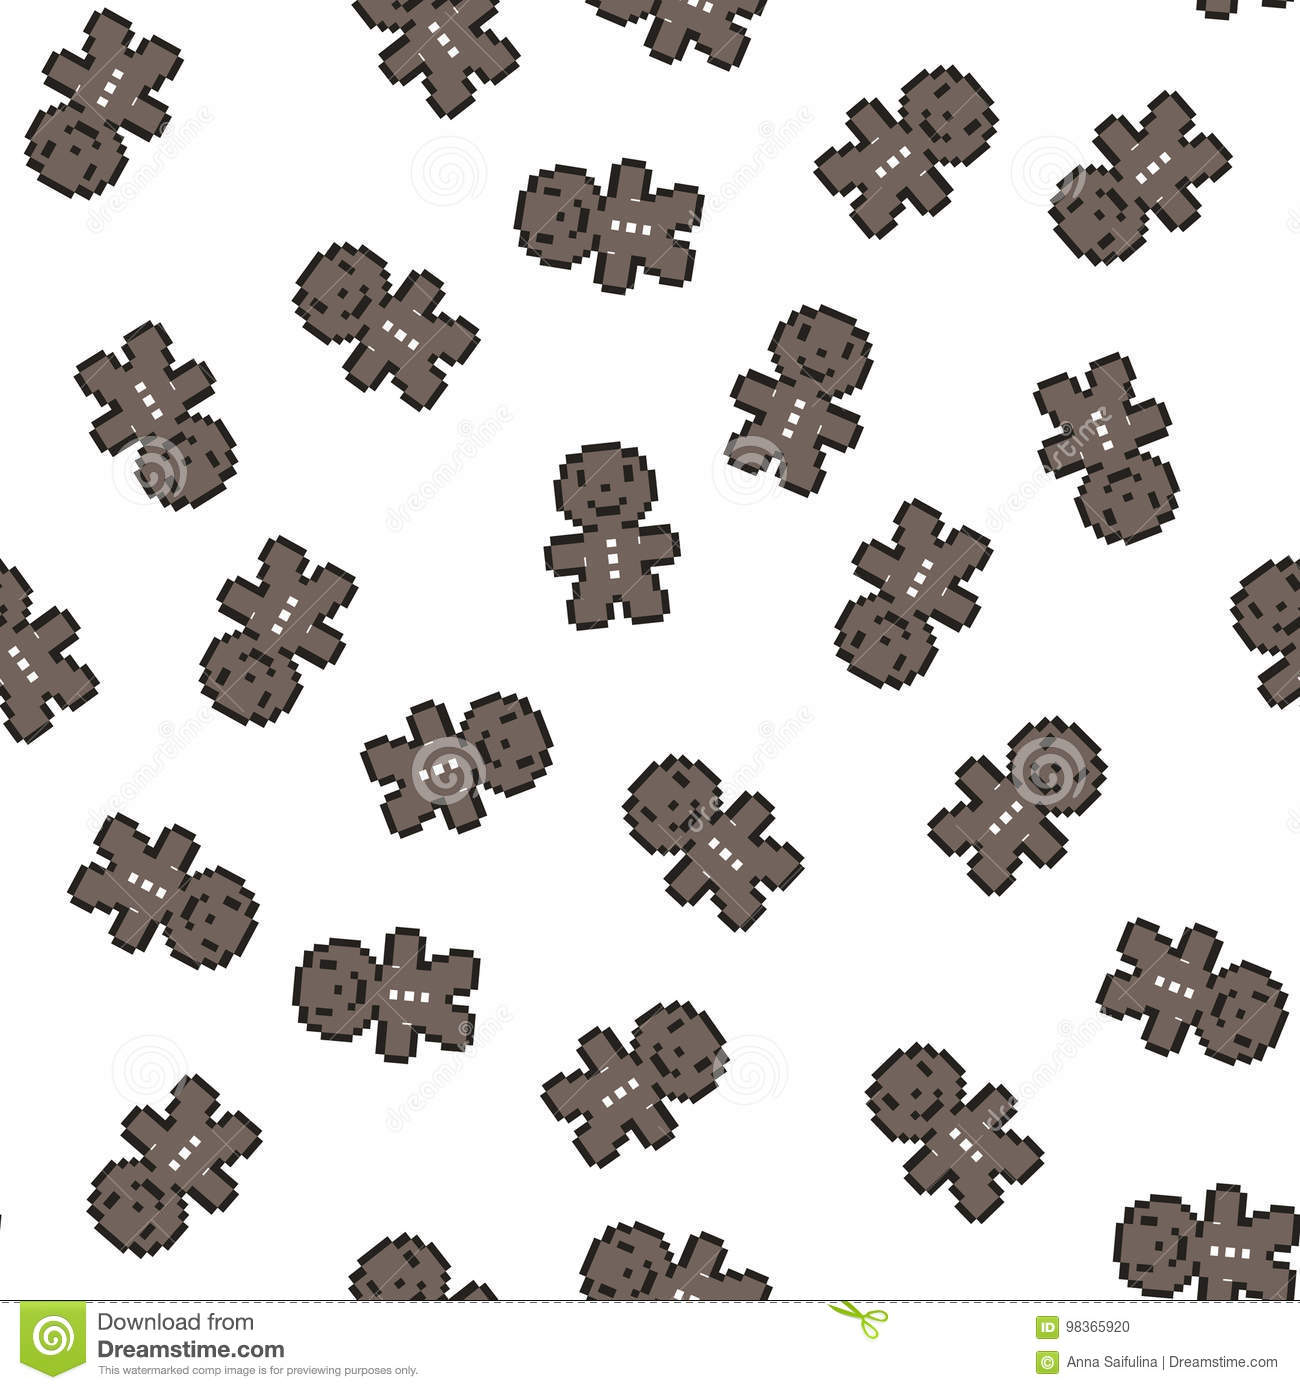 Seamless pattern with gingerbread men. Christmas, new year background, Vector illustration Pixel art